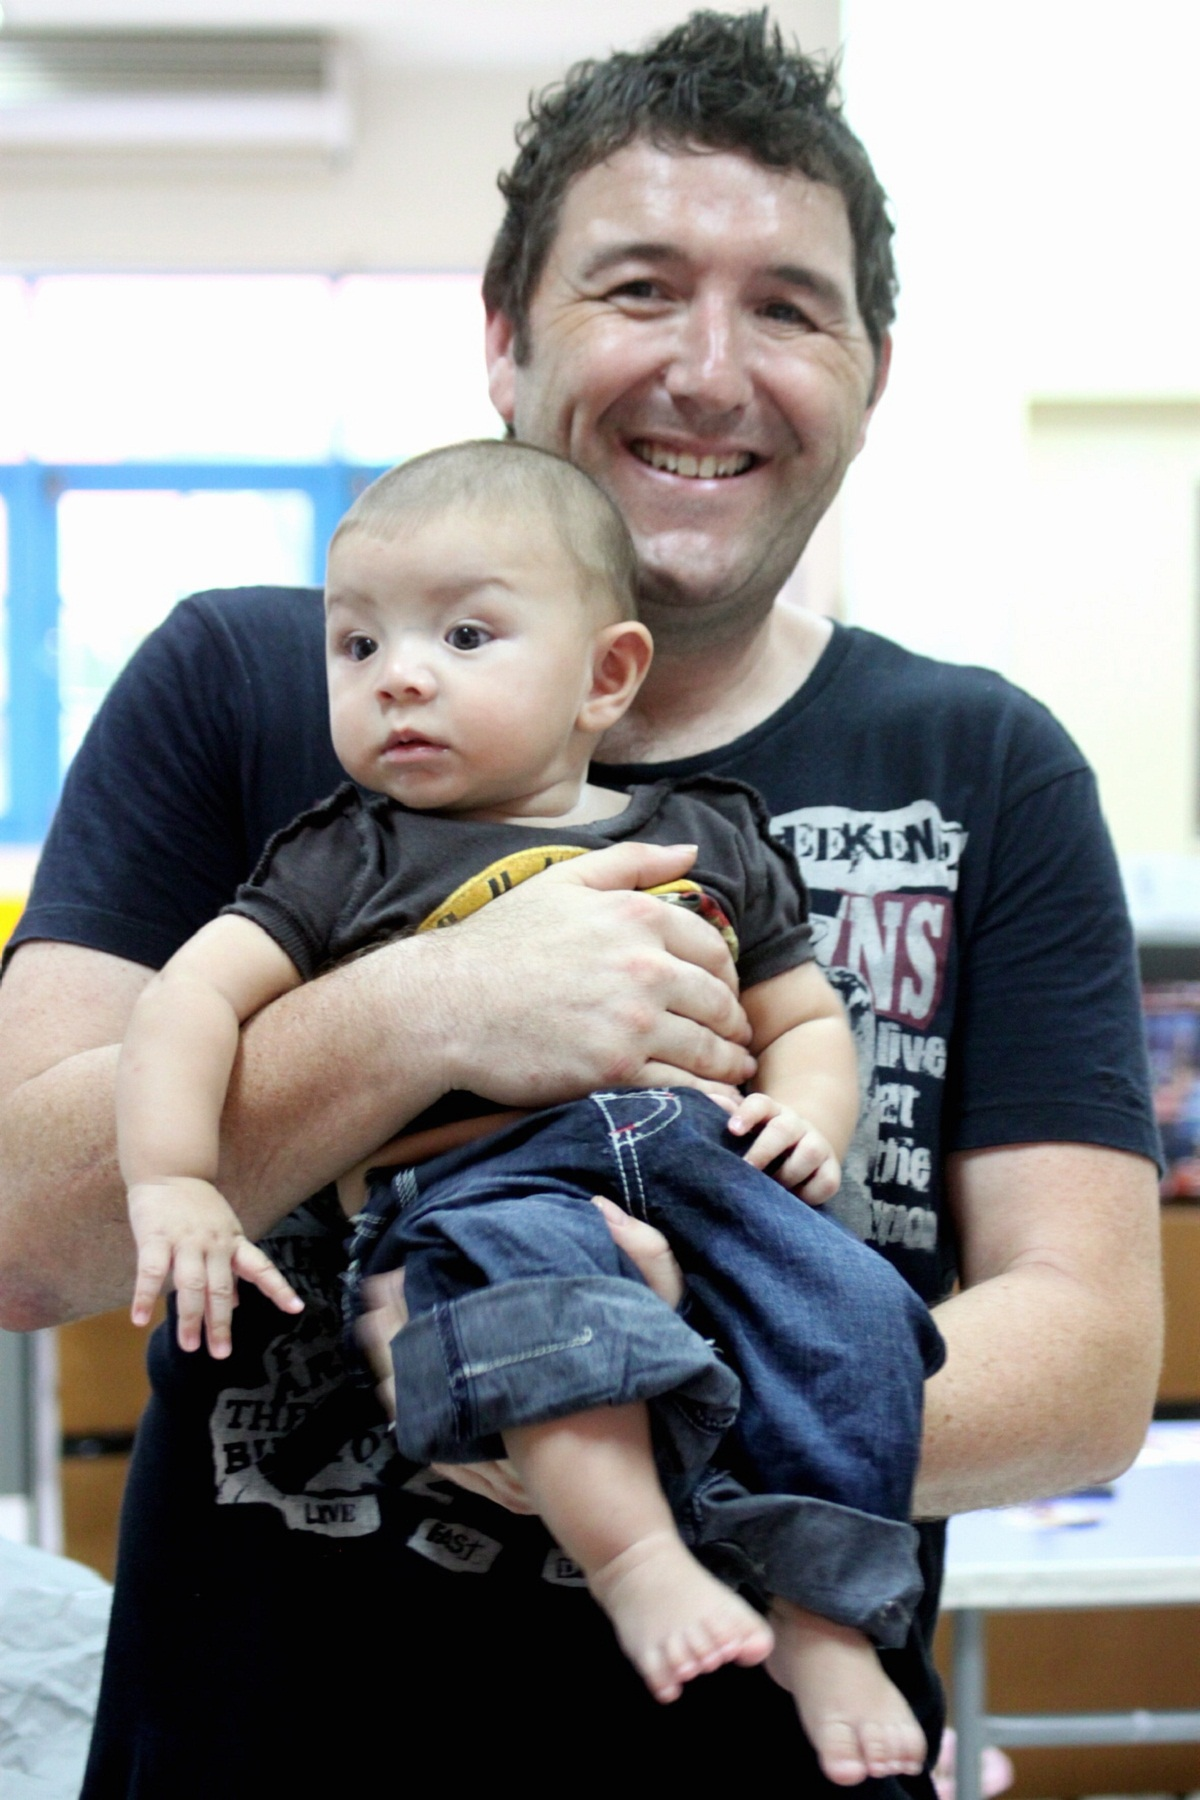 Adam Pickles, from Keighley, pictured with his son, Benjamin, before the attack in Thailand that left him in a coma